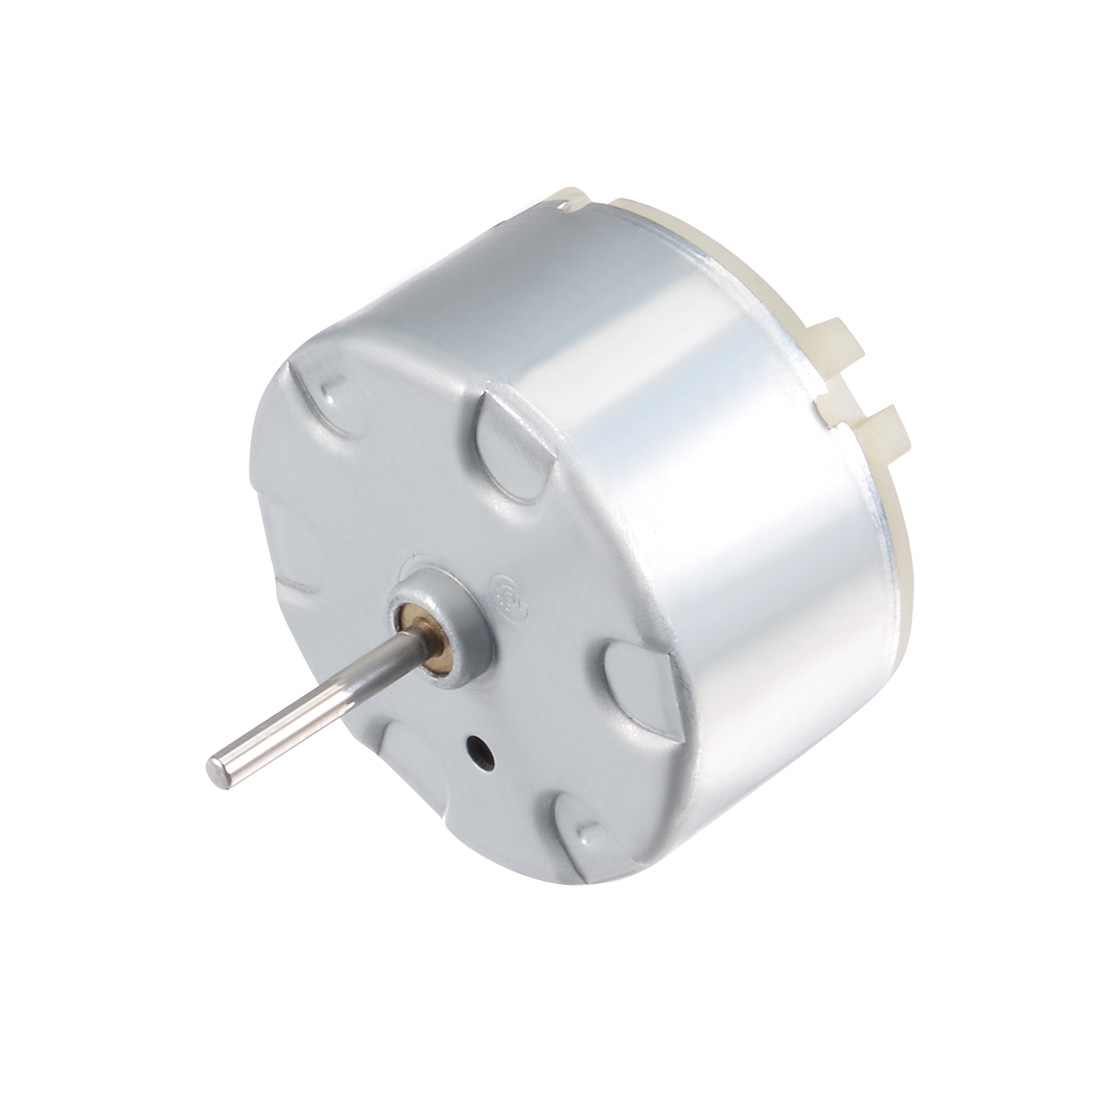 Small Motor DC 12V 10000RPM High Speed Motor for DIY Toy Cars Remote Control